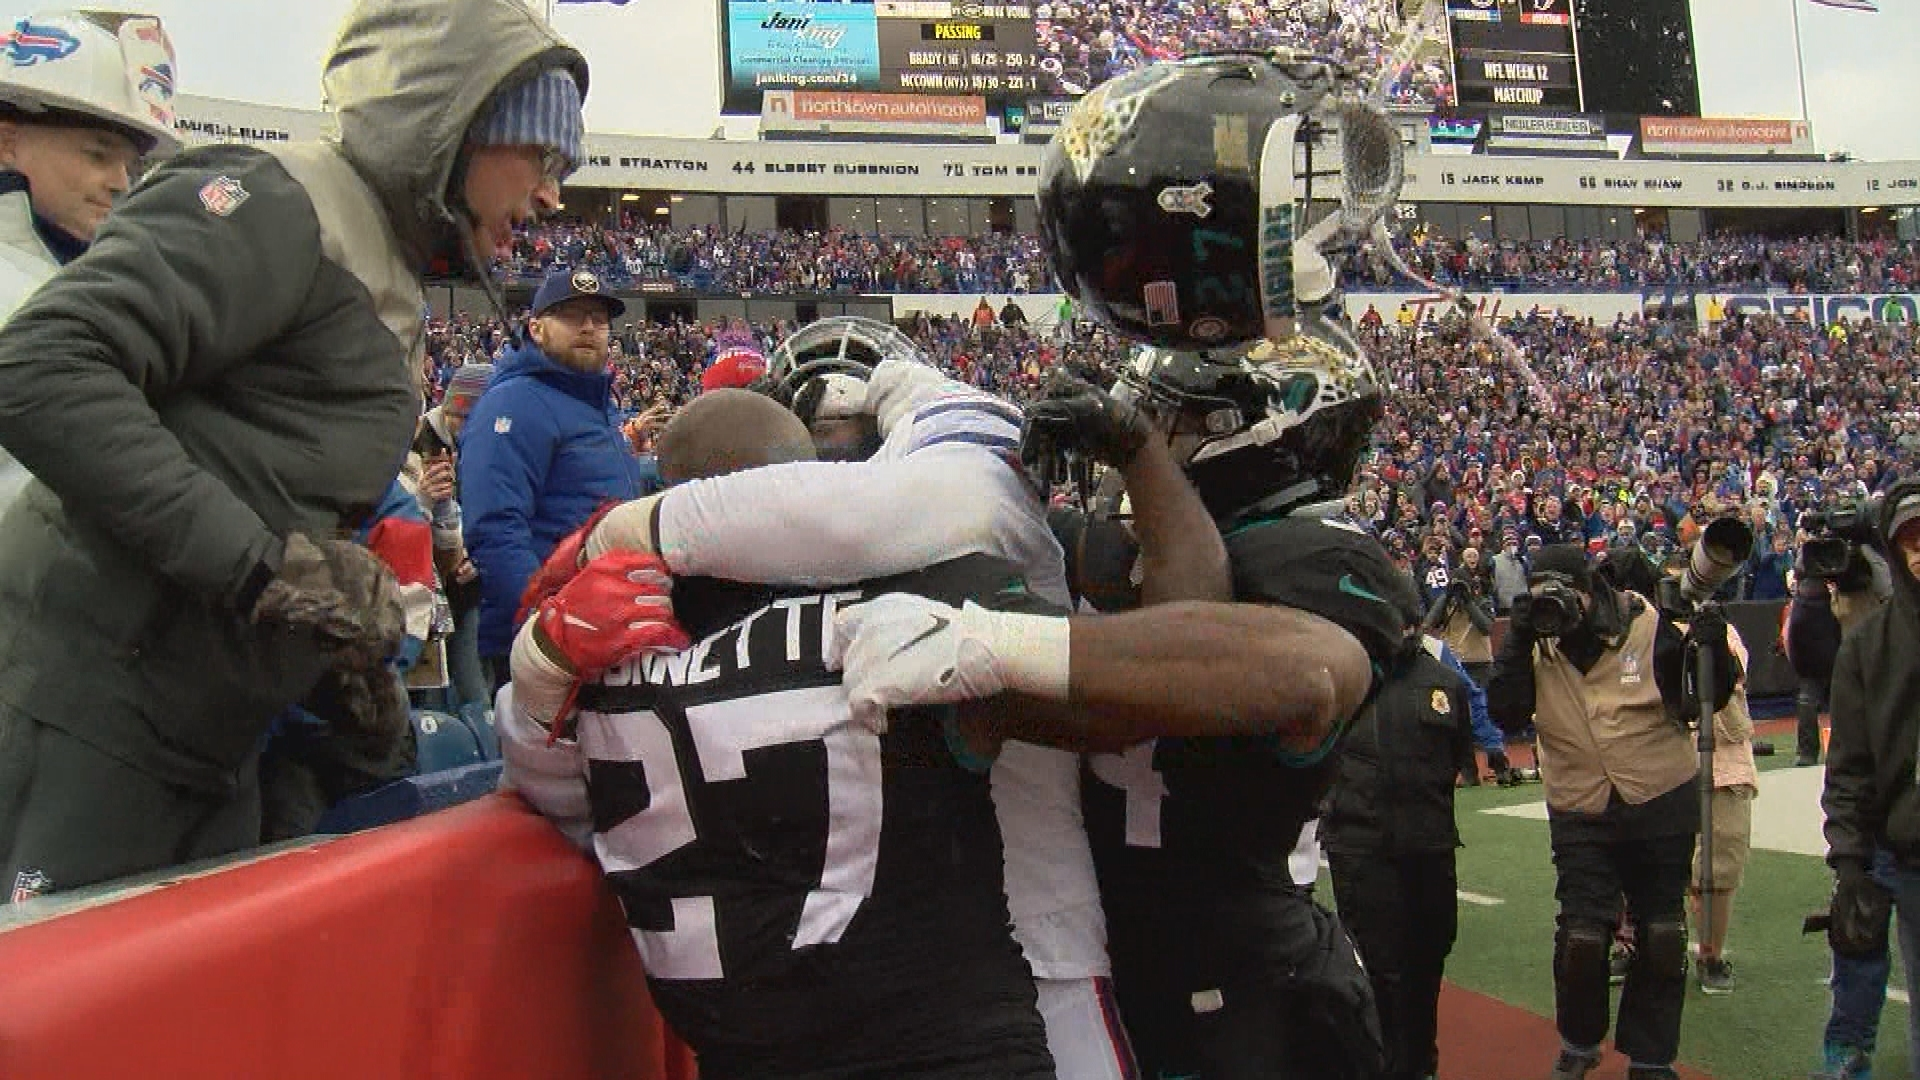 Brawl sparks turning point in Bills win over Jags